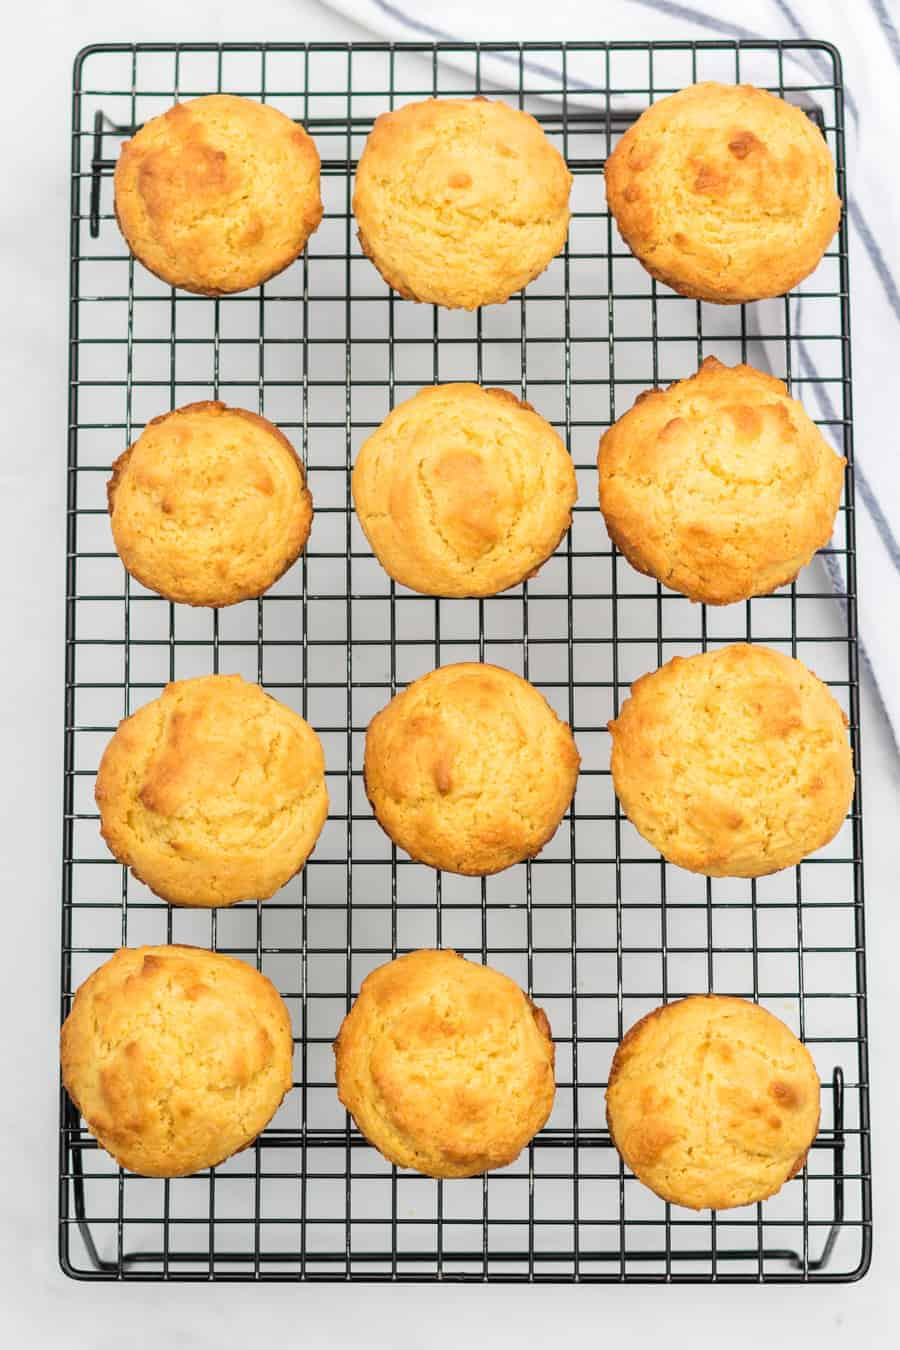 12 baked and golden corn muffins rest on a wire cooling rack.